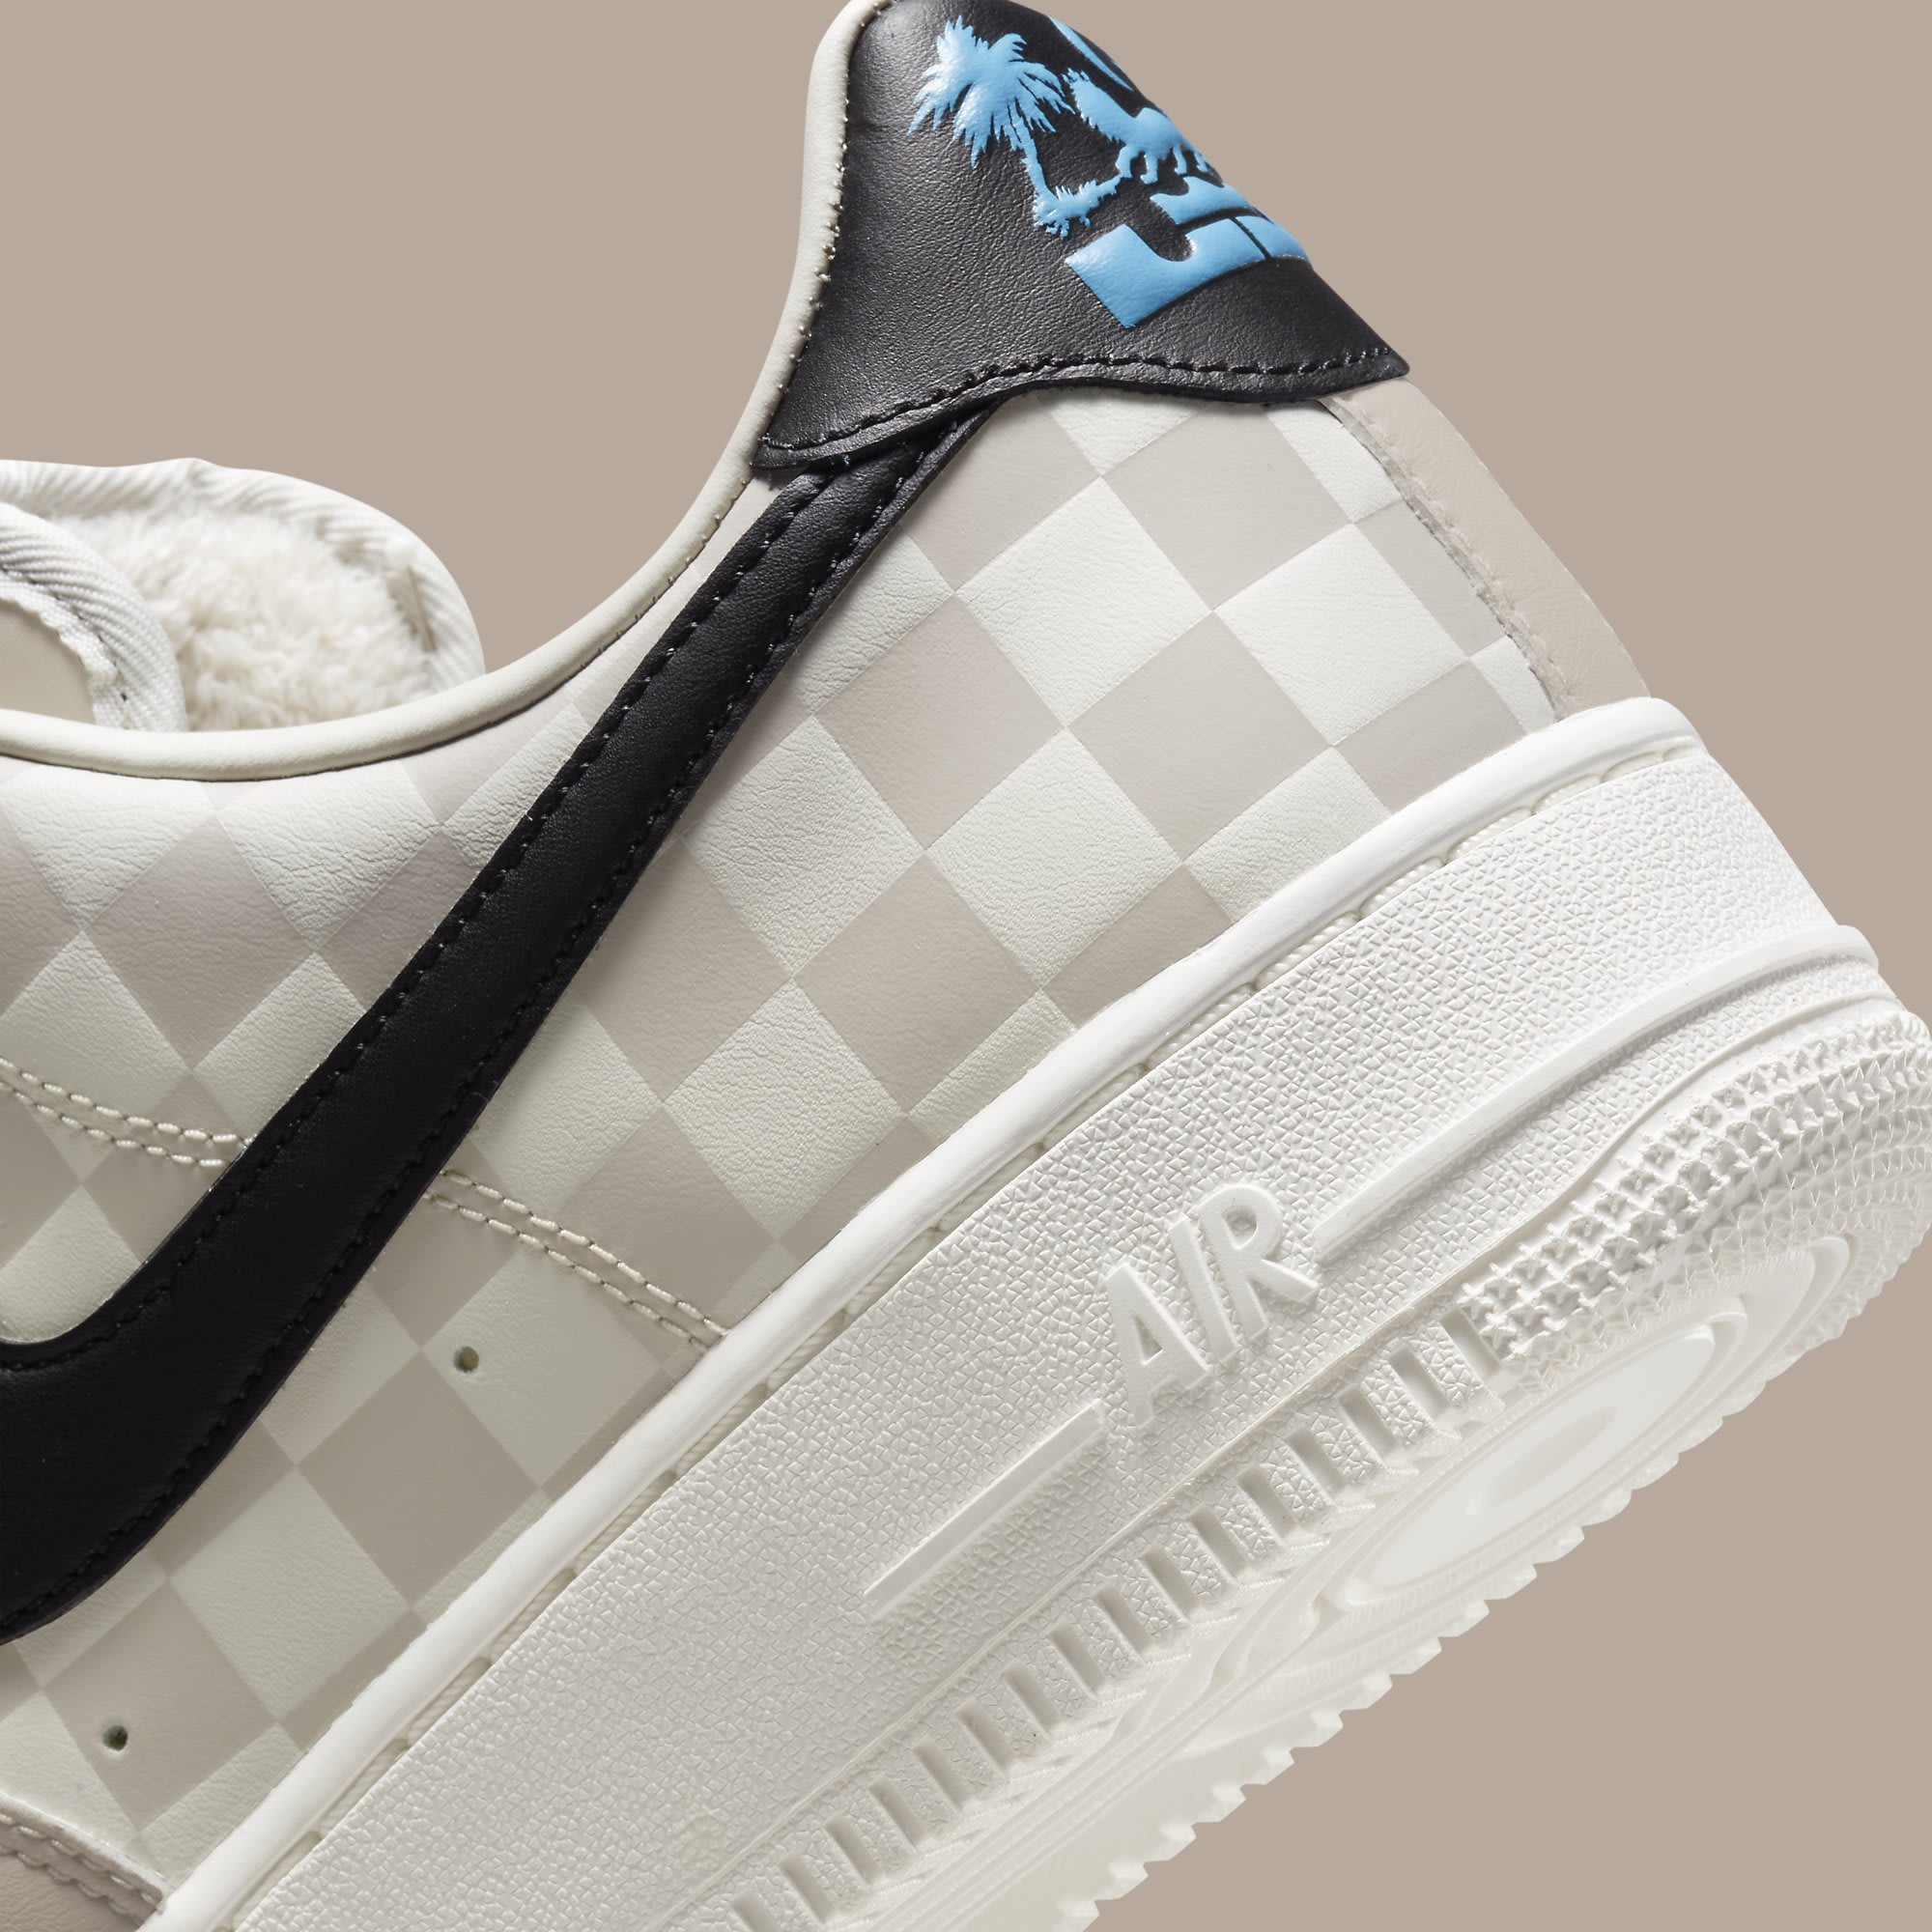 LeBron James x Nike Air Force 1 Low Strive for Greatness Release Date DC8877-200 Heel Detail